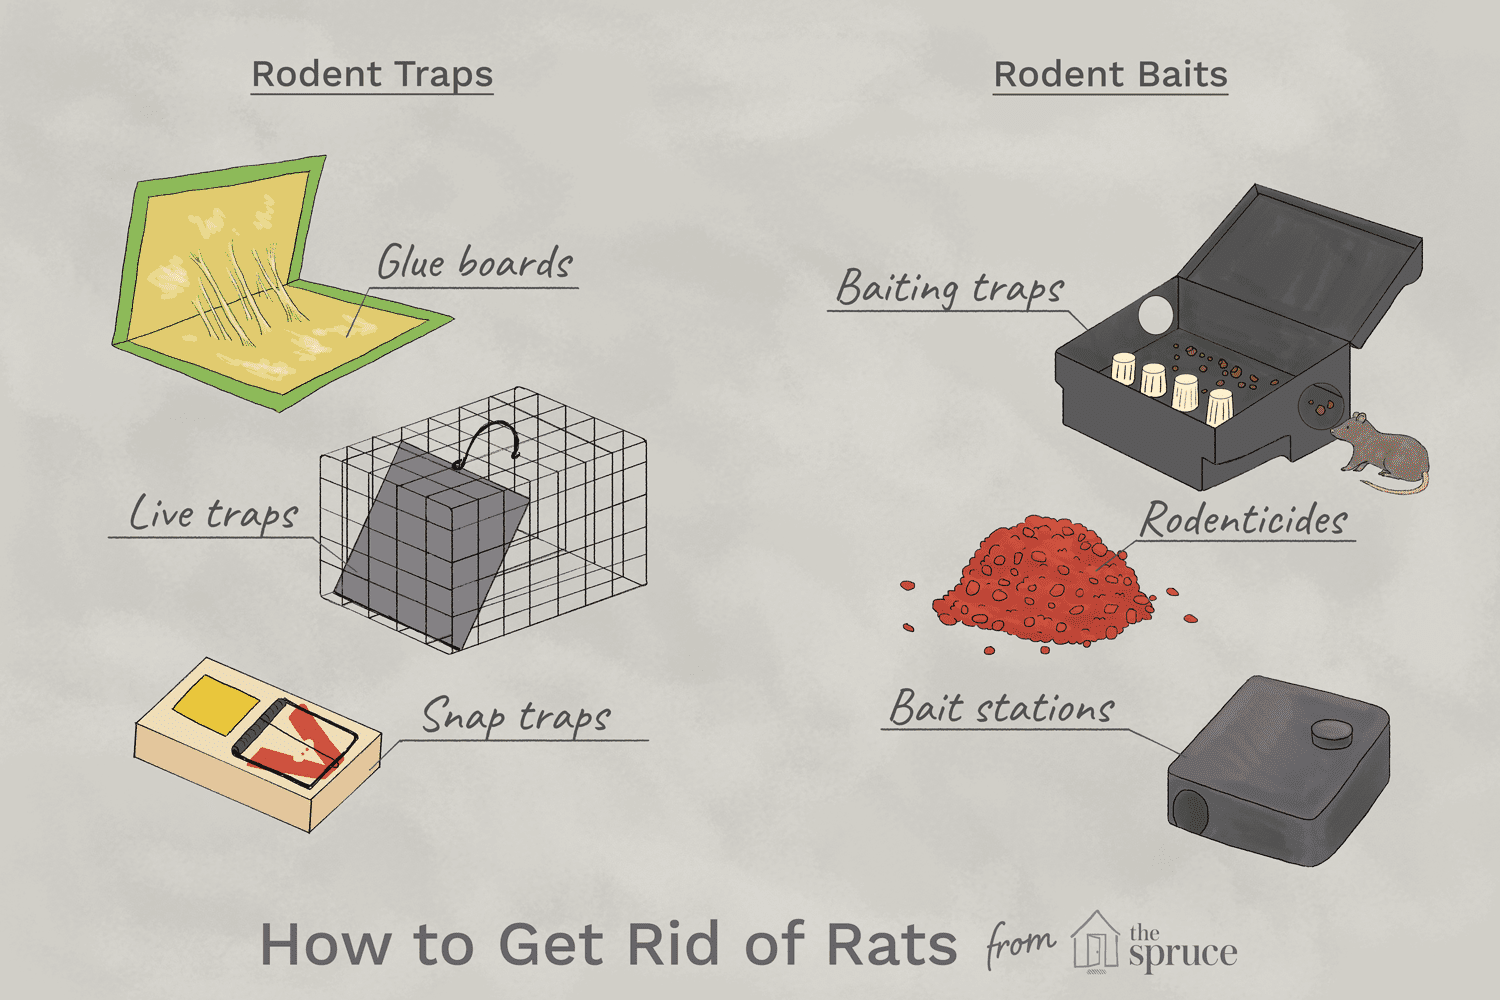 How To Get Rid Of Rats The 2 Best Ways